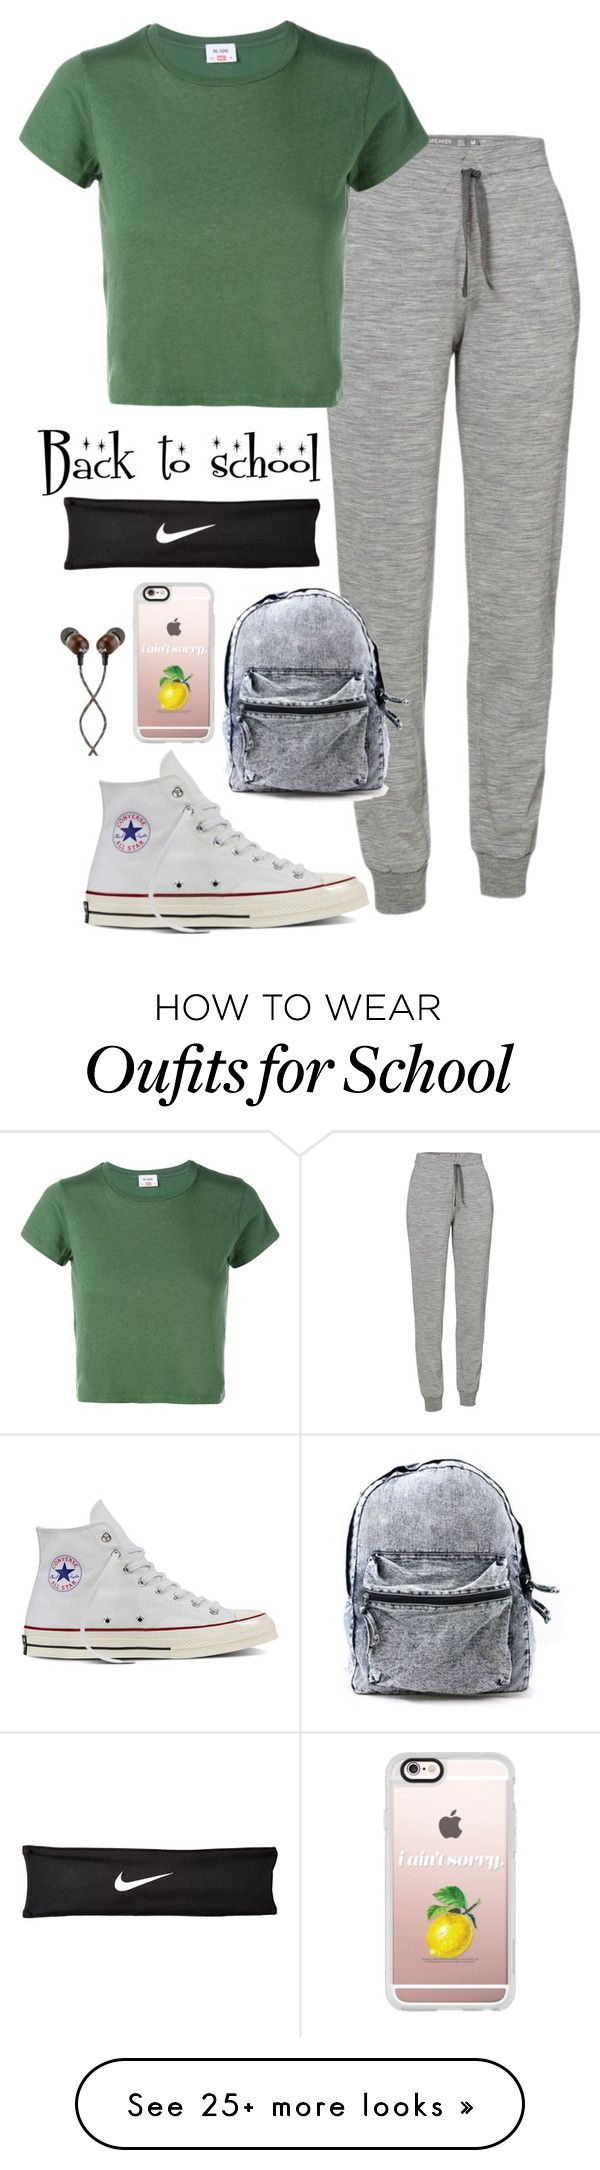 """Back to school"" by musicwildlife on Polyvore featuring Icebreaker, RE/DONE, Converse, Casetify, The House of Marley and NIKE"